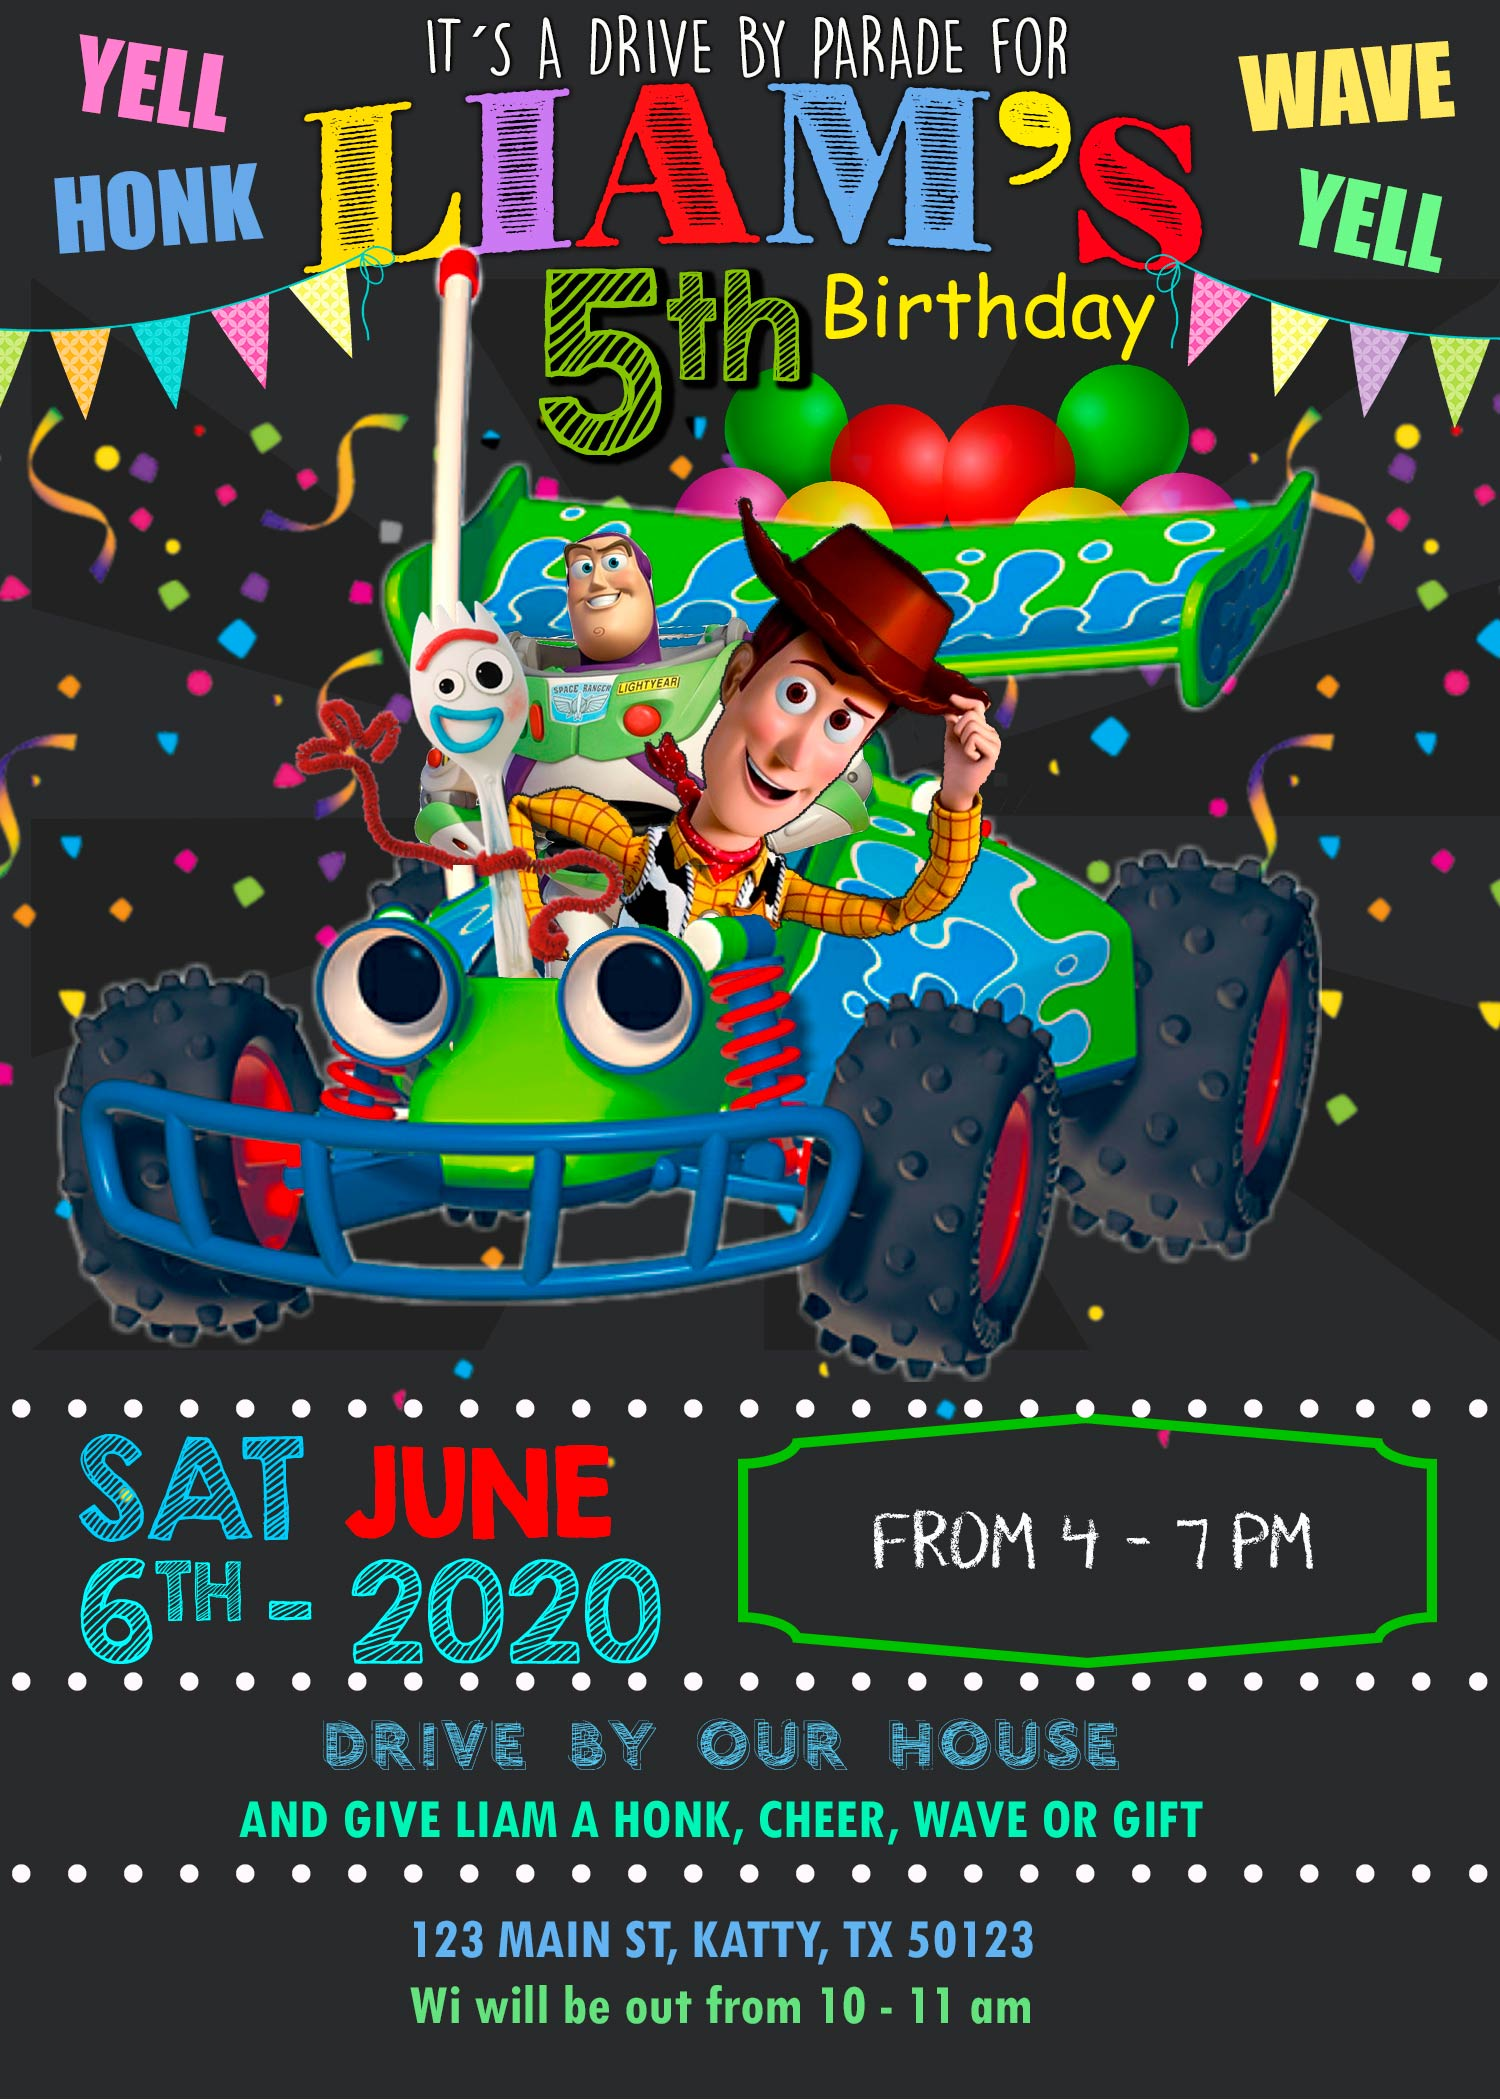 toy story drive by birthday parade